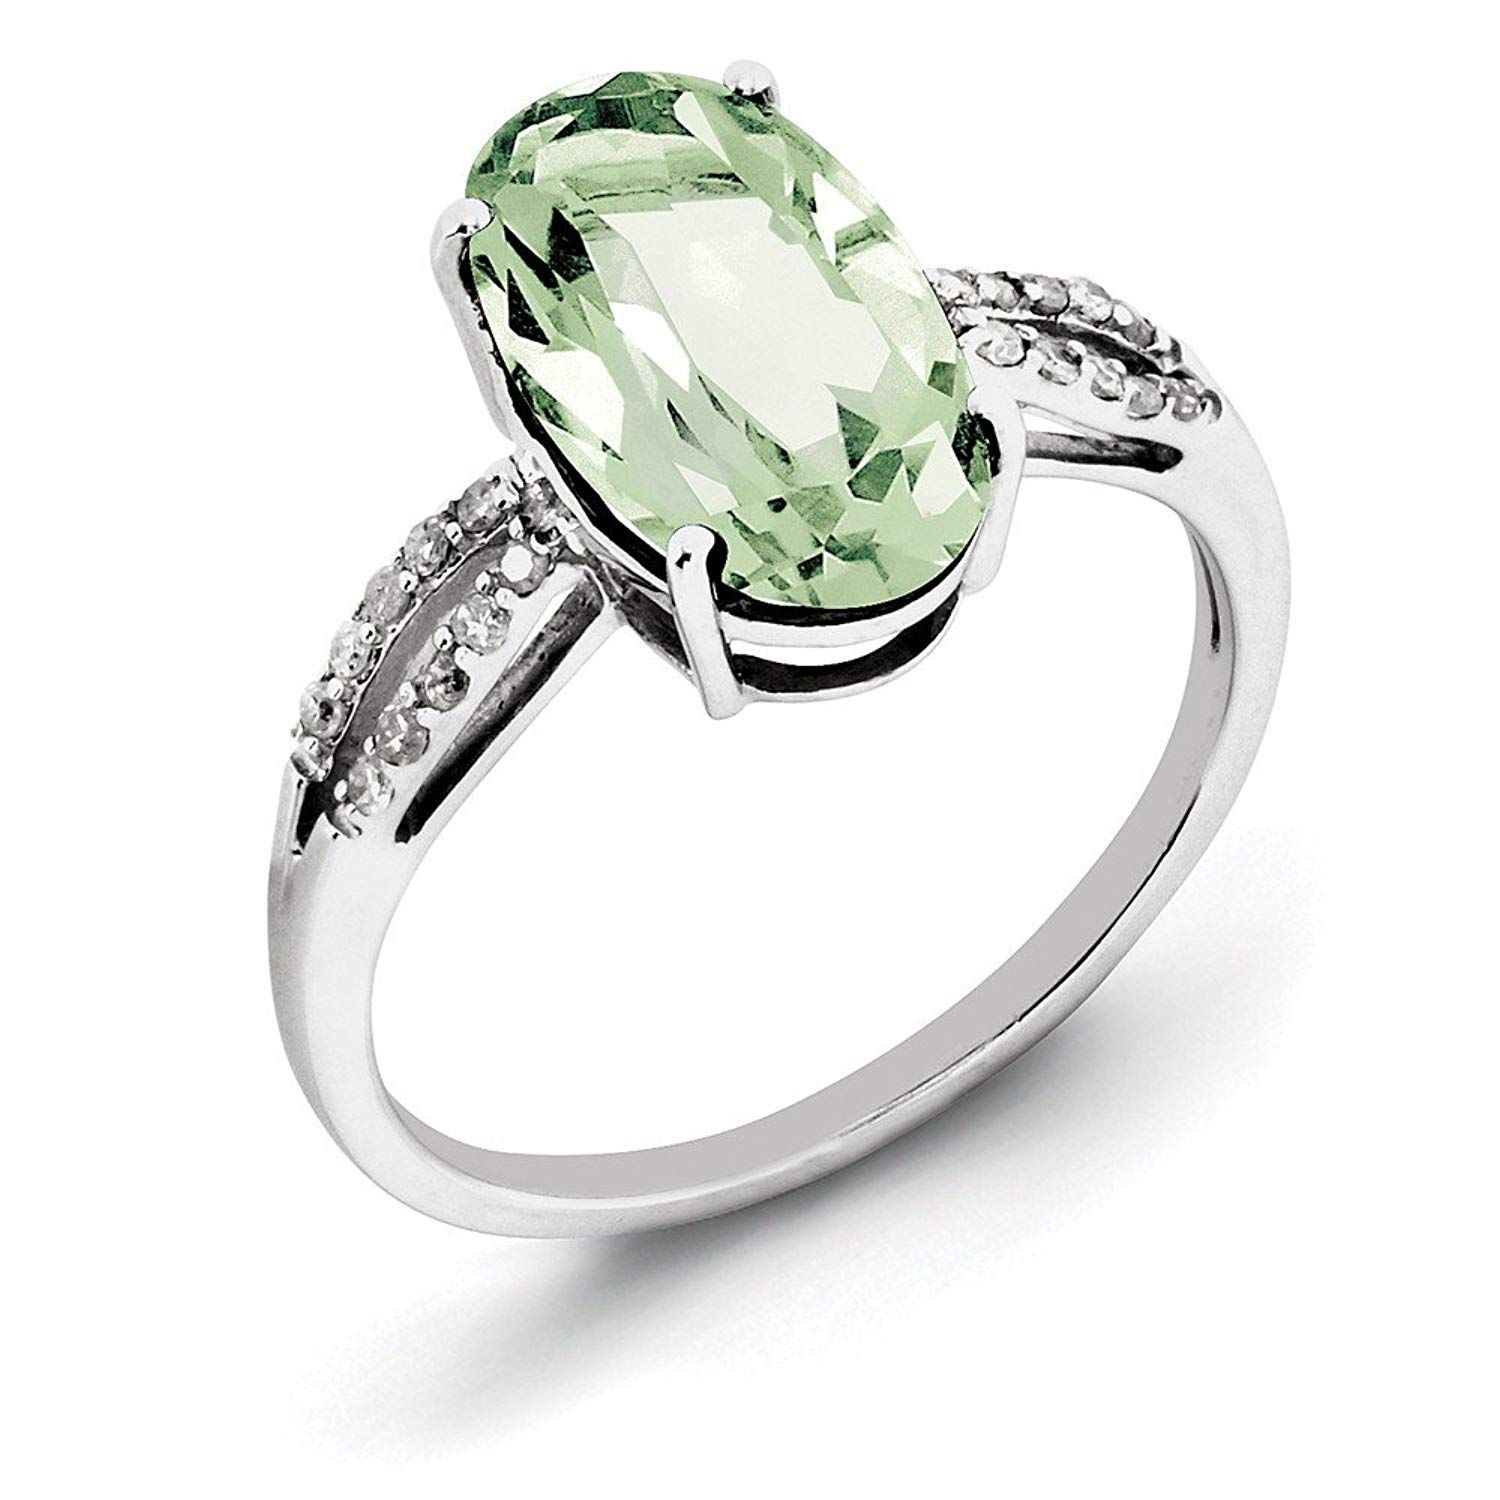 Majestic Sensation 1.25 cts Peridot Ring Sterling Silver Size 5 to 9